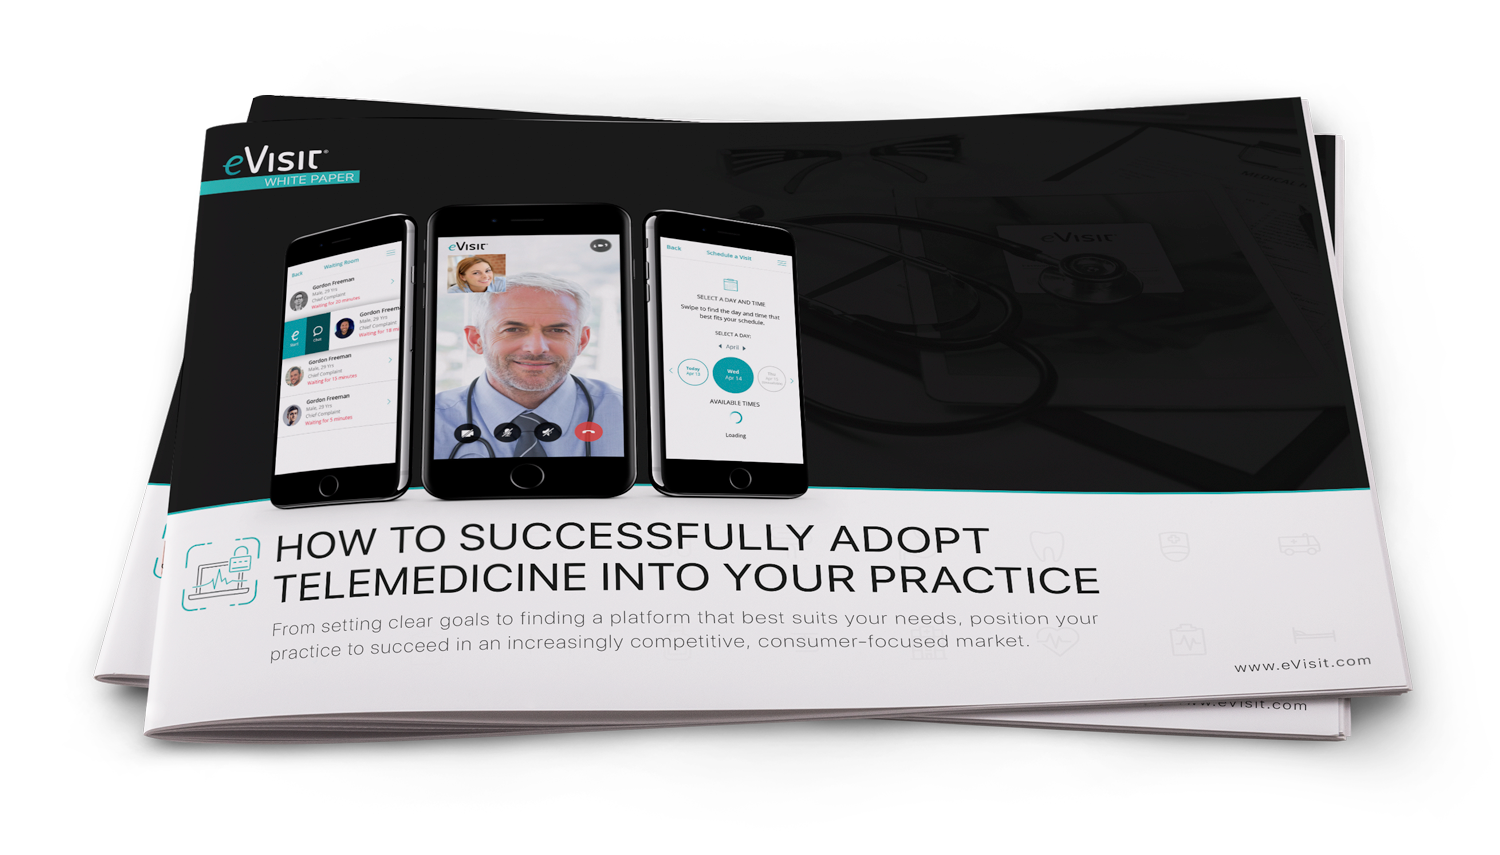 How To Successfully Adopt Telemedicine Into Your Practice [White Paper]